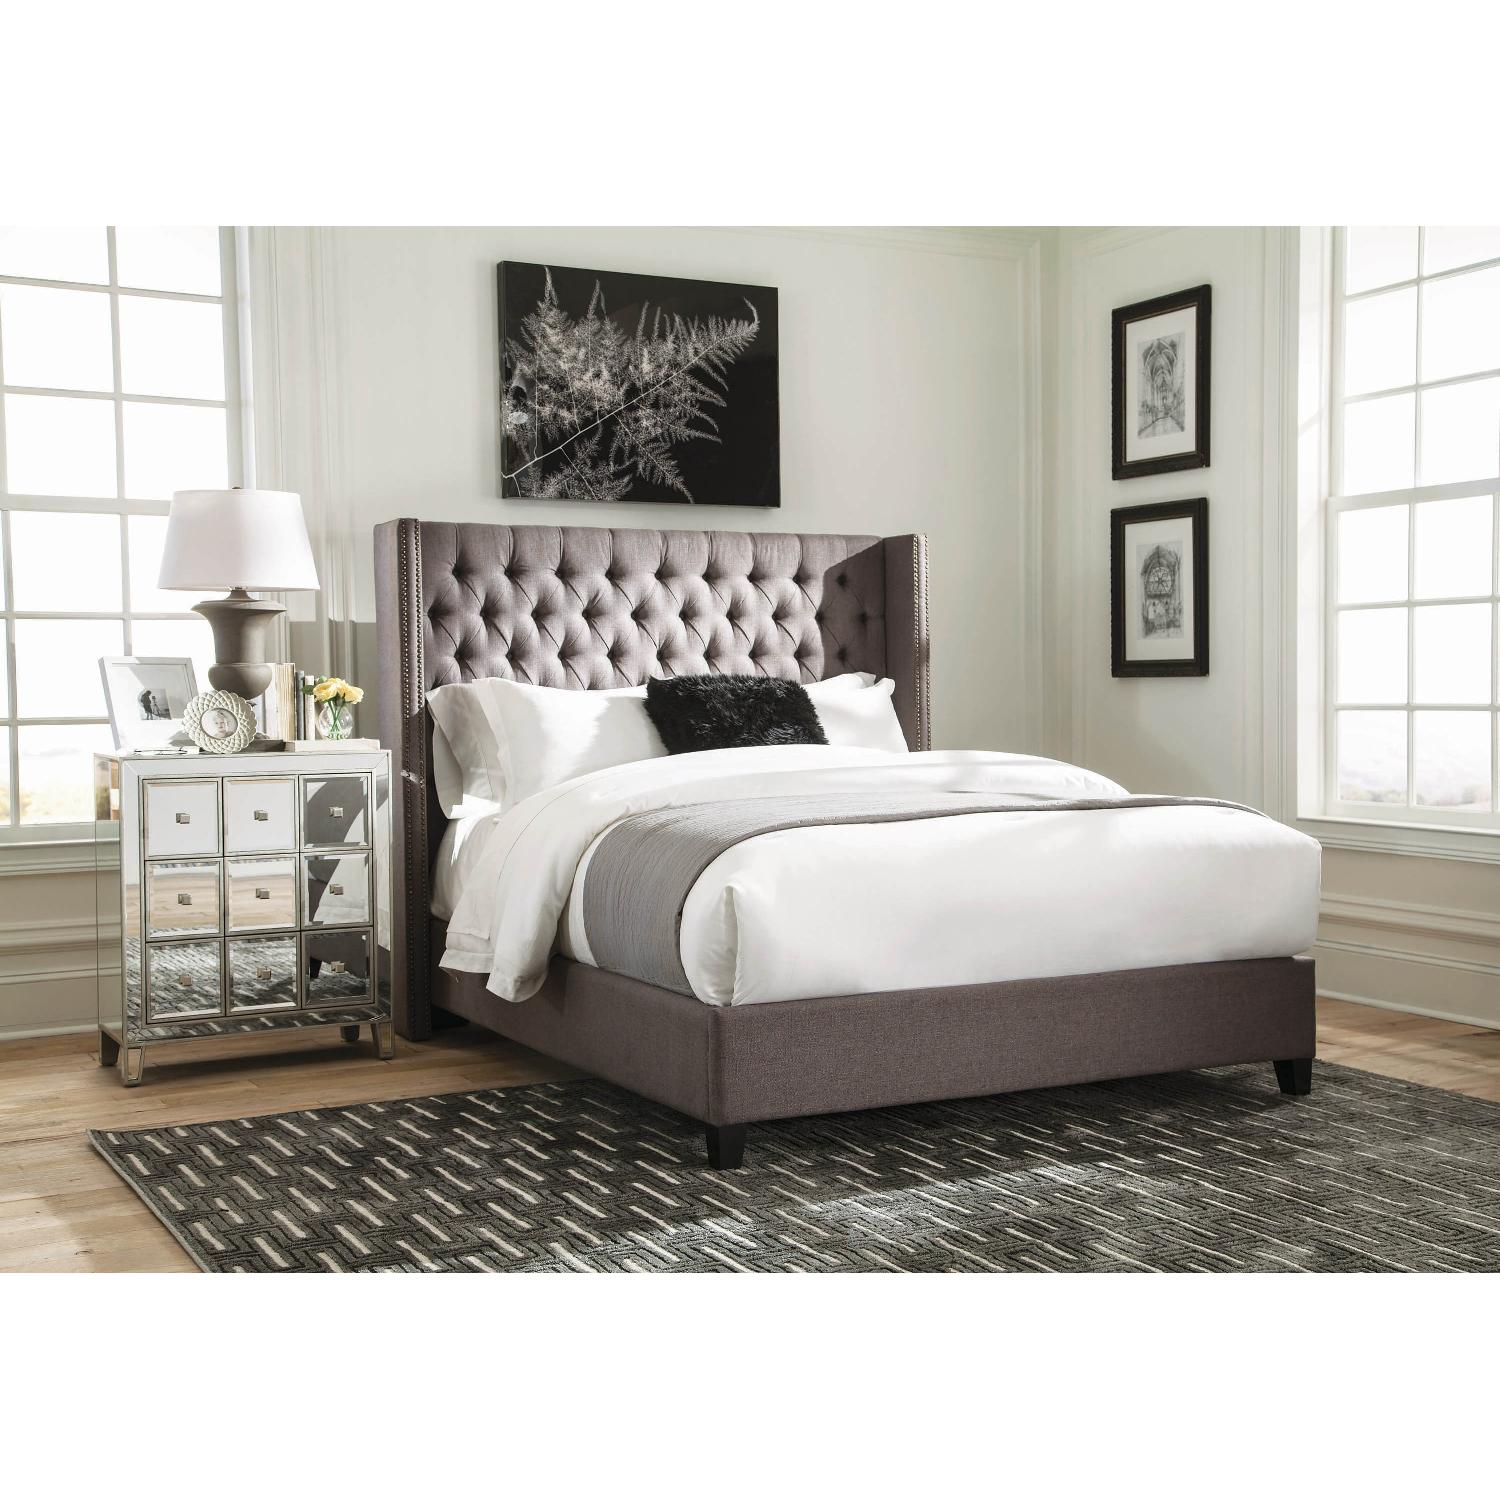 Modern Demi Wing Queen Bed in Grey w/ Nailhead Accent - image-10